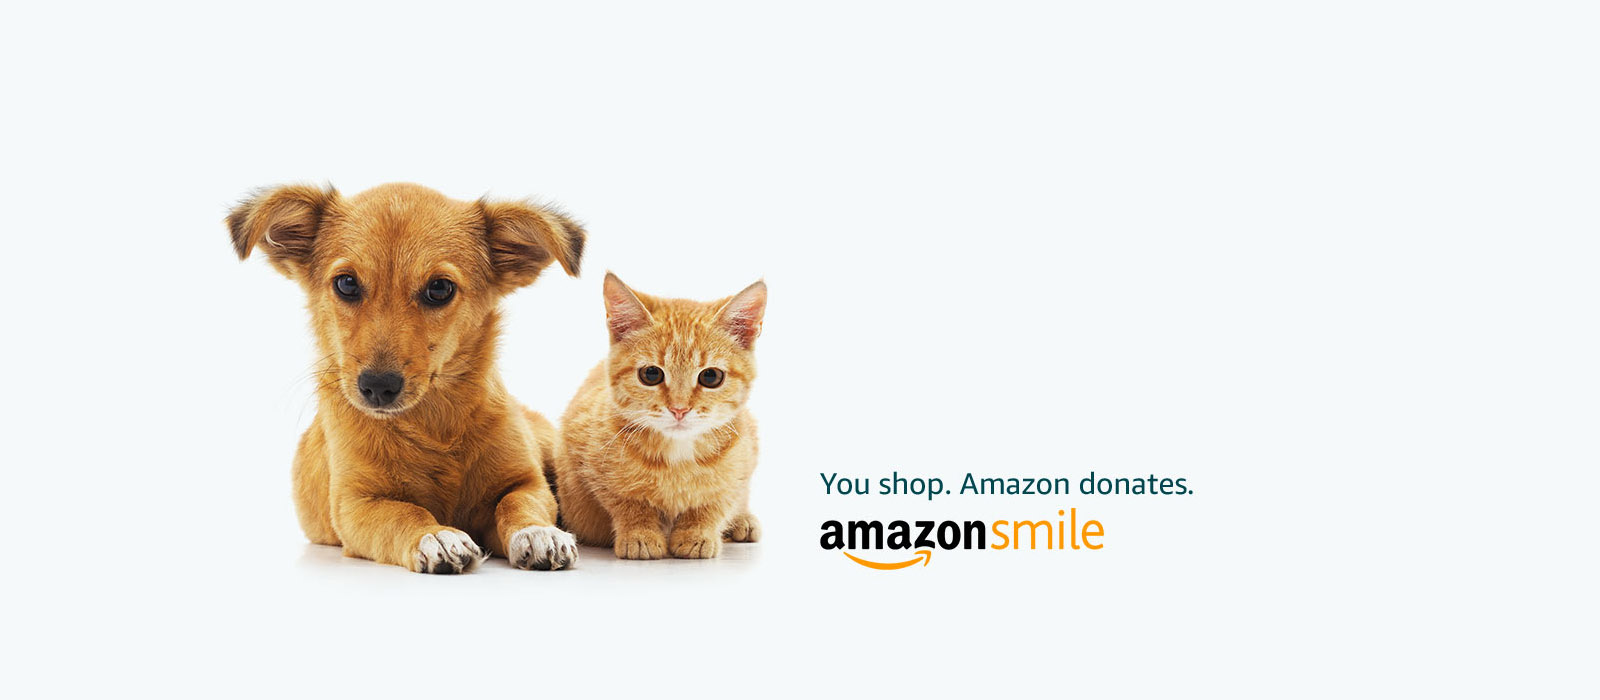 Do you shop at Amazon? Support FOAS through Amazon Smile!